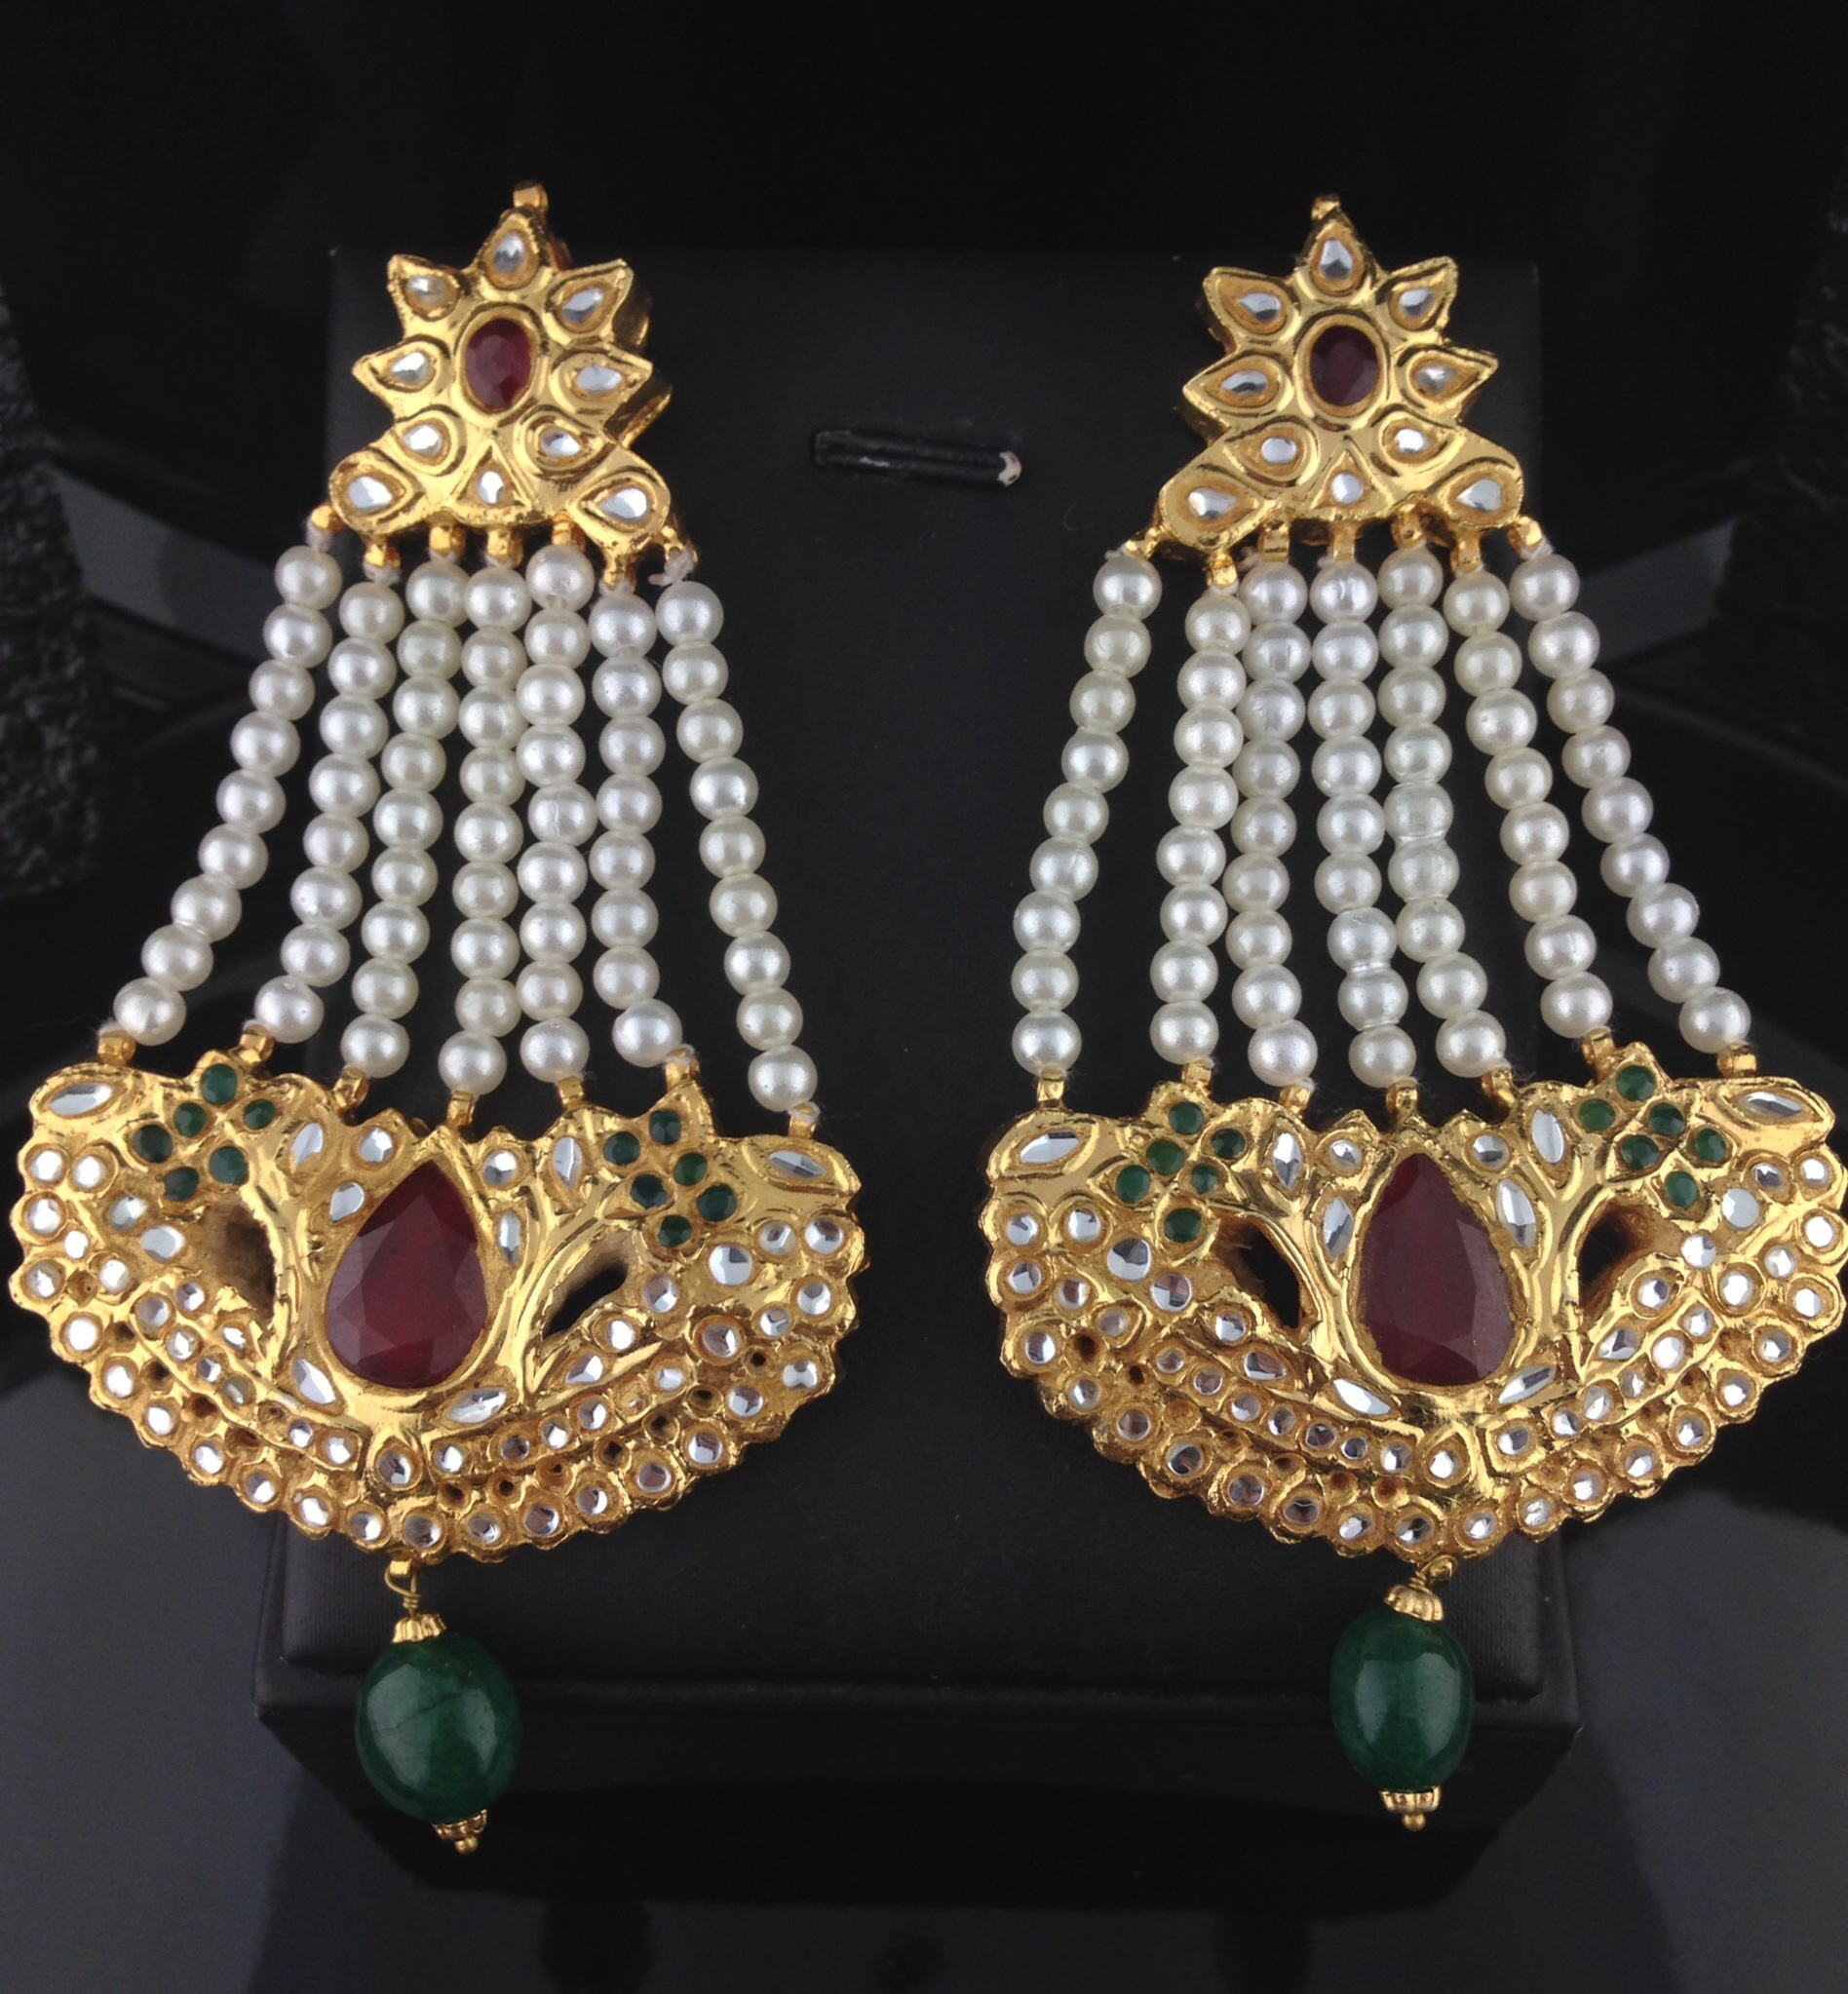 Bridal Kundan Earrings With Pearls, Emeralds And Rubies